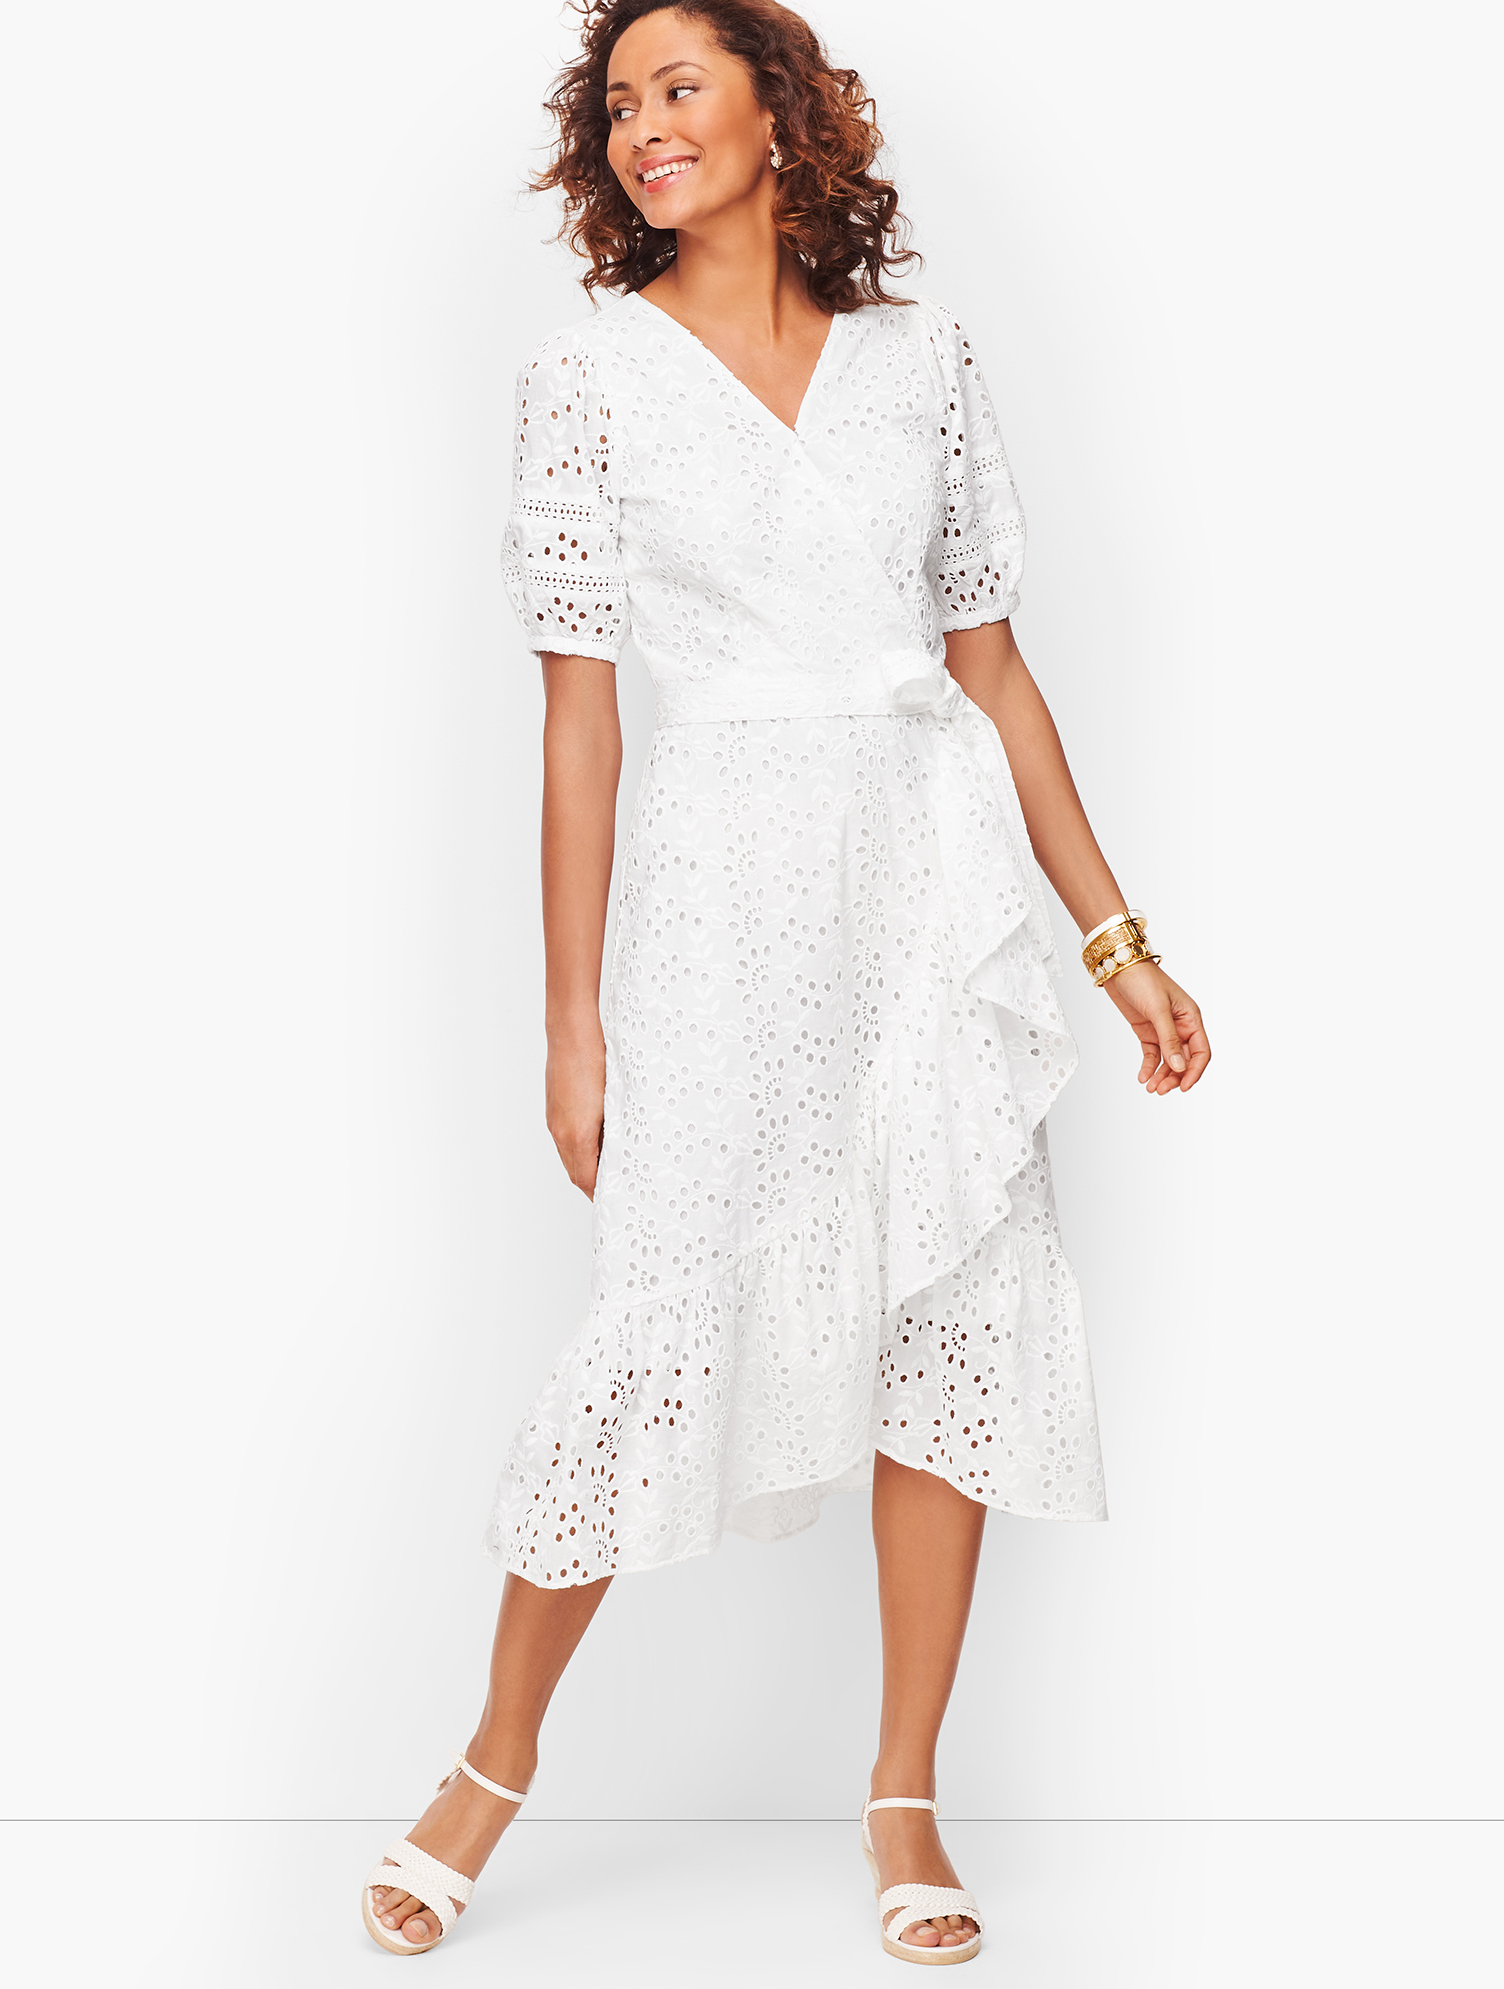 Cottagecore Dresses Aesthetic, Granny, Vintage Eyelet Cascade Wrap Dress - White - 16 - 100 Cotton Talbots $64.99 AT vintagedancer.com